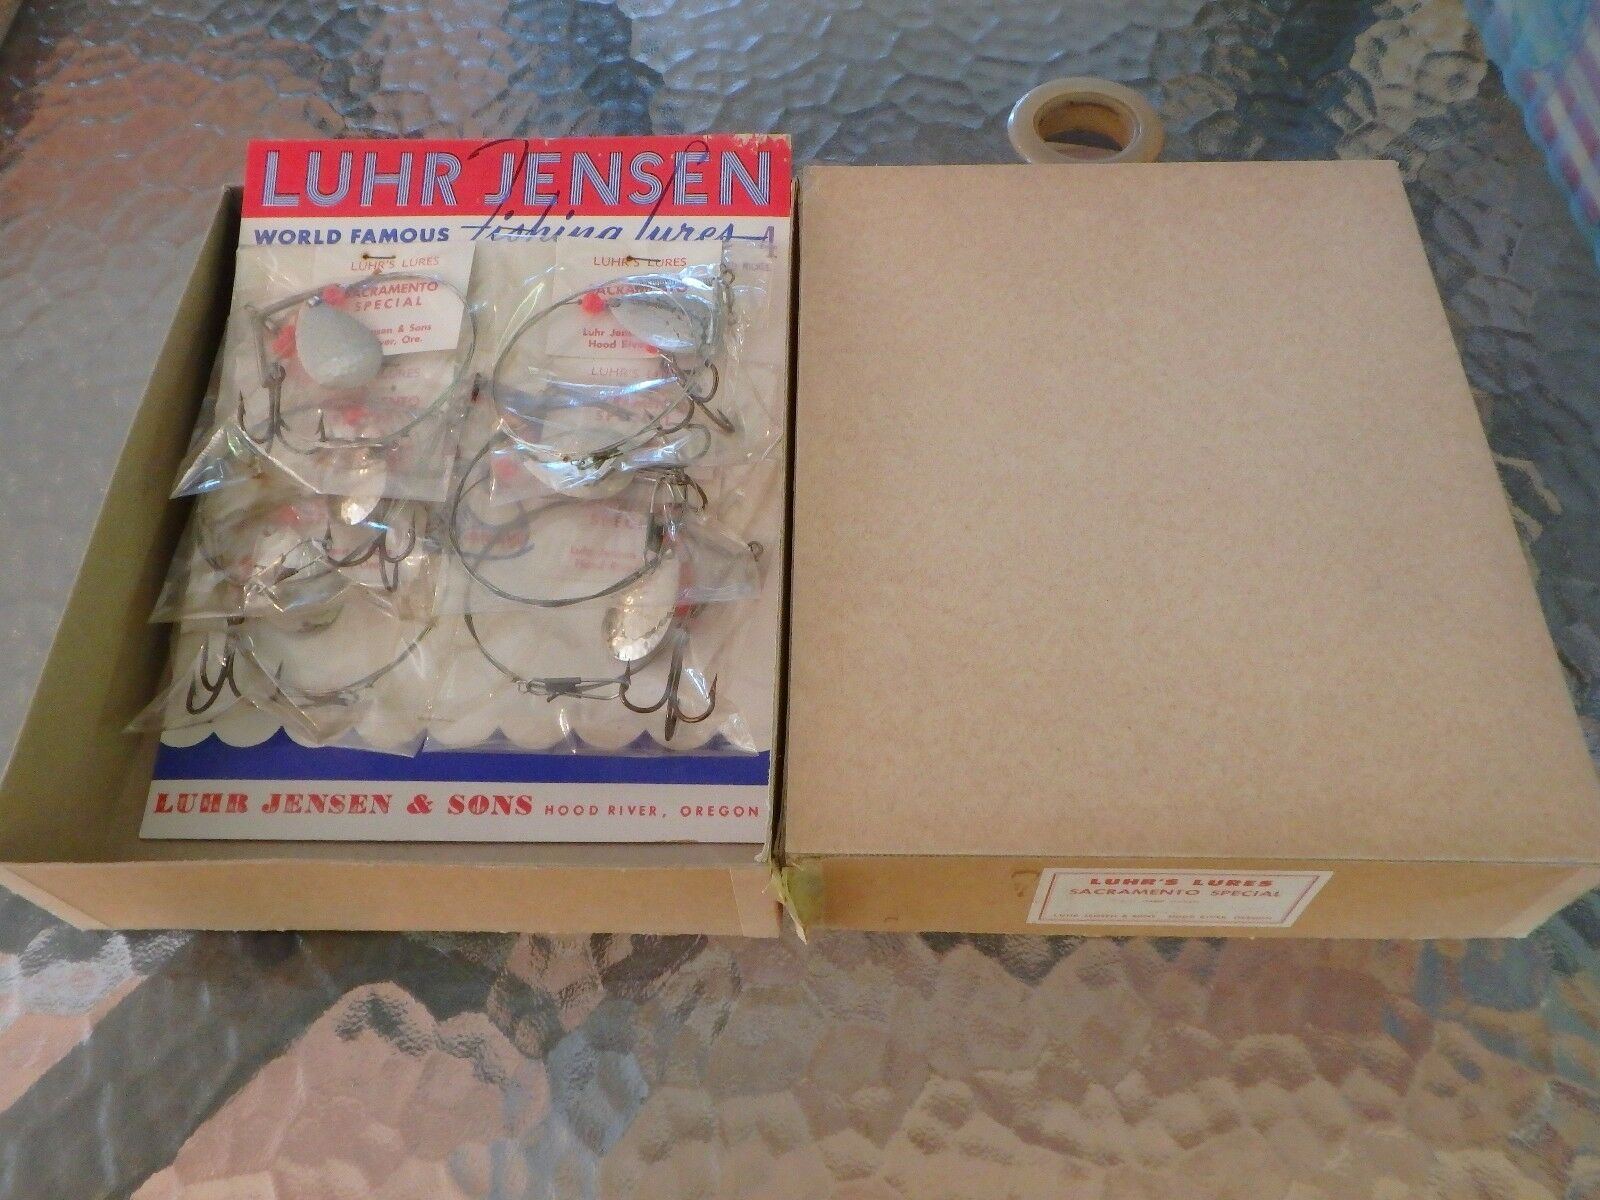 Luhr Jensen & Sons Luhr's Lures Sacramento Special Dealer Box Included 4 Display